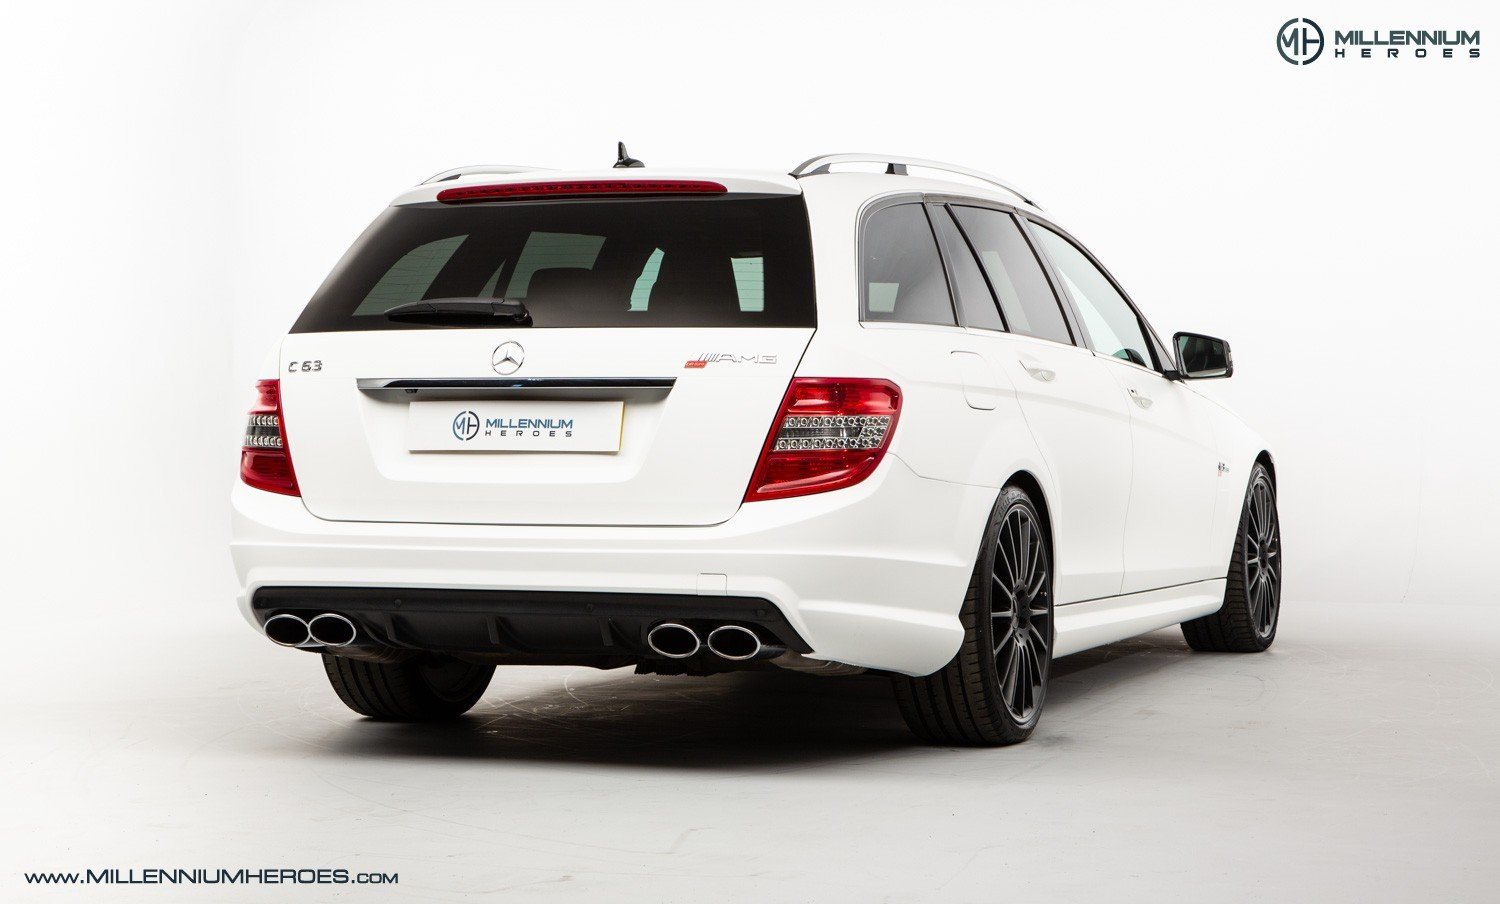 2010 MERCEDES C63 DR520 // EXCLUSIVE GB SPECIAL EDITION / 1 OF 20 For Sale (picture 3 of 6)